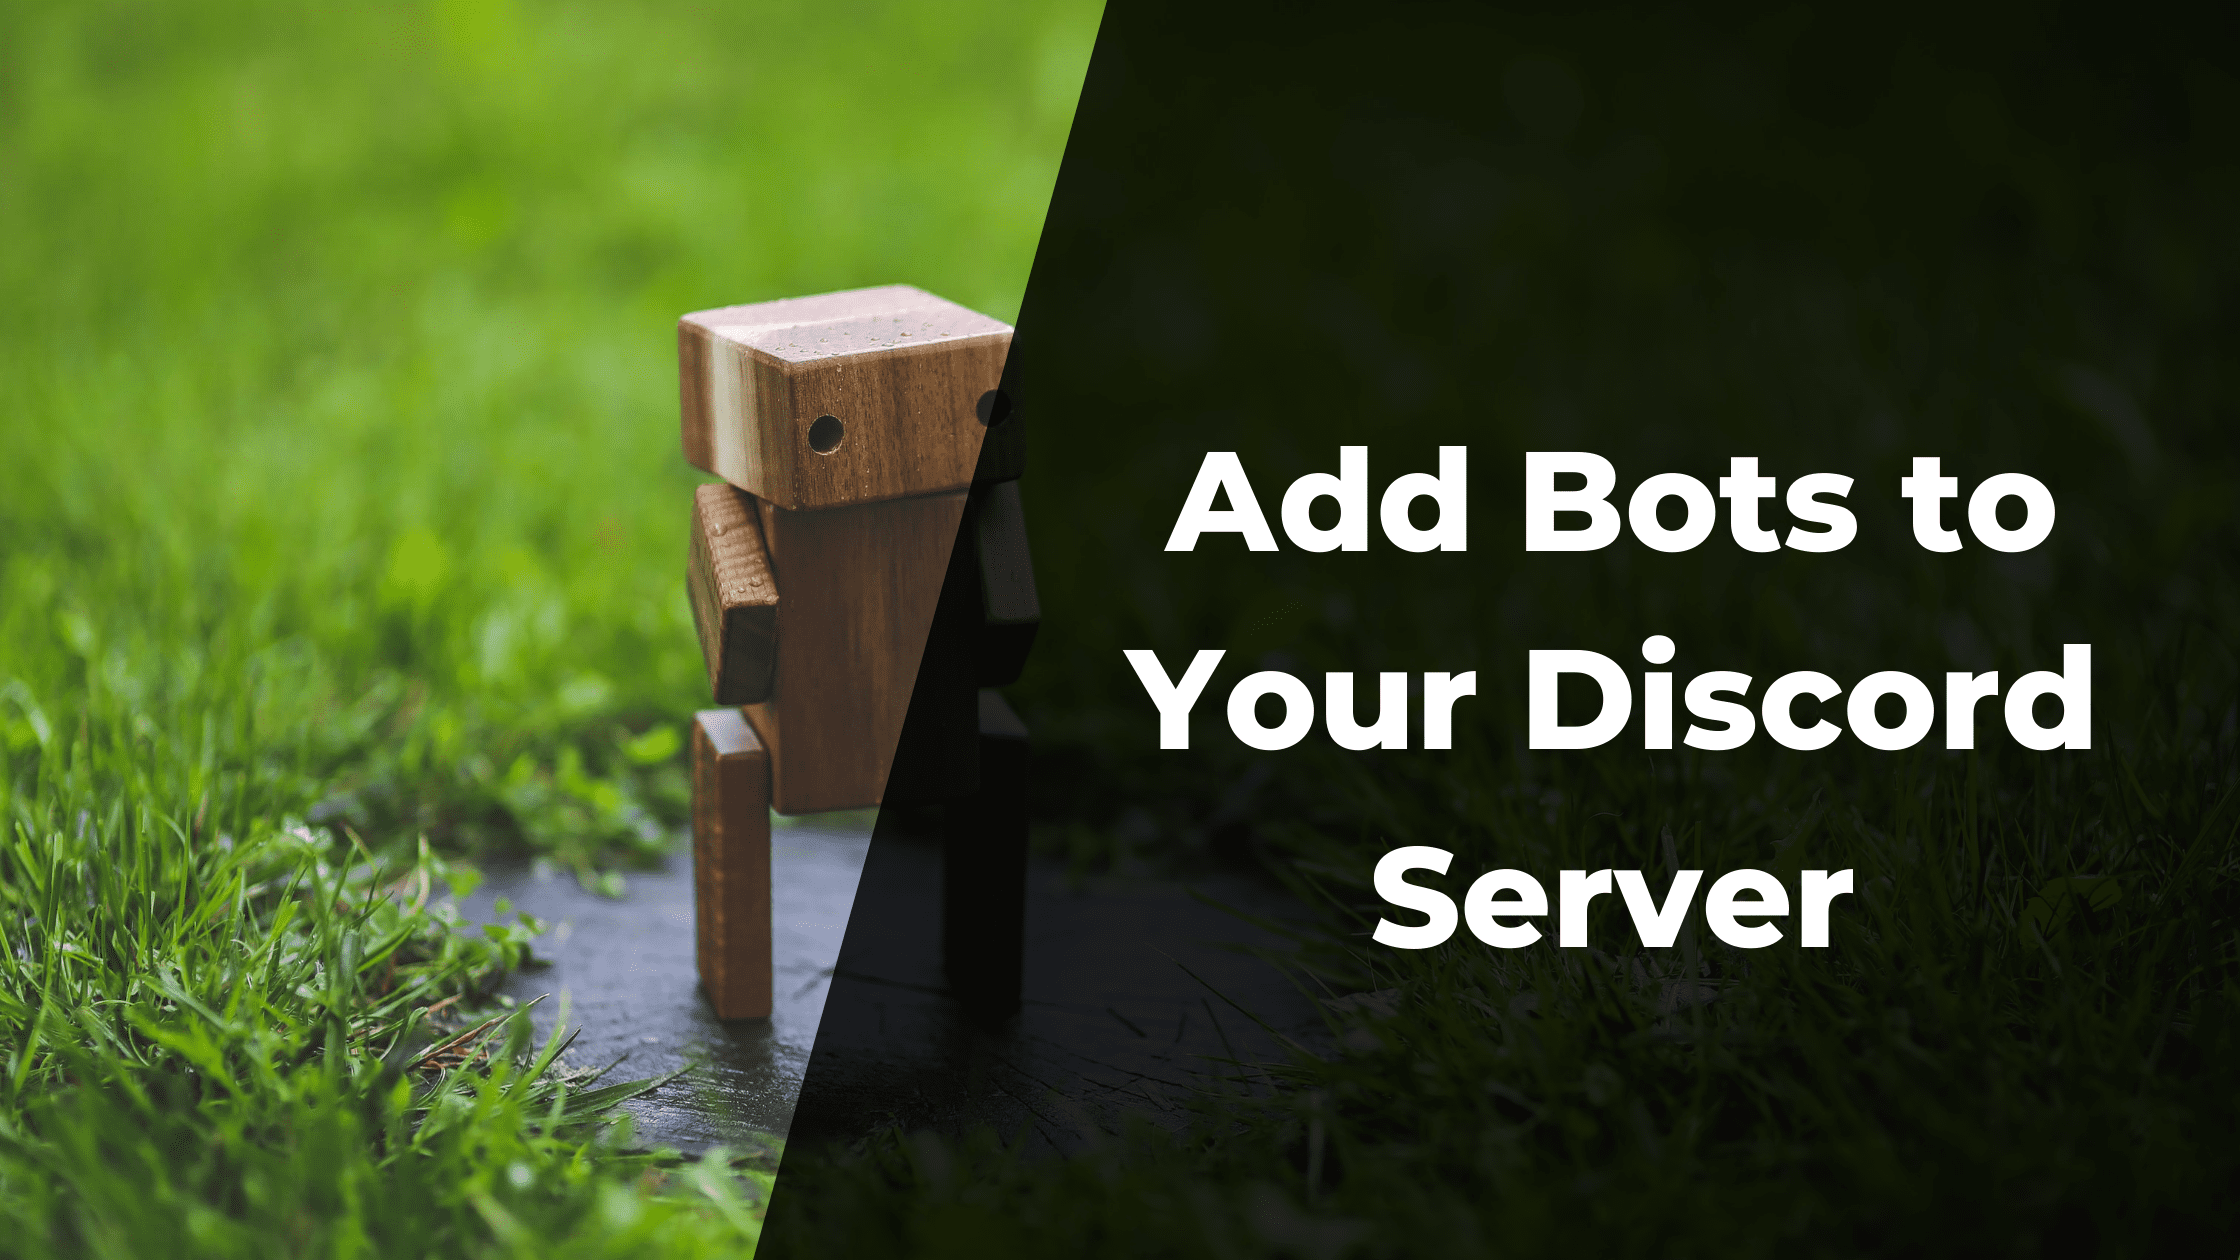 Add Bots to Your Discord Server